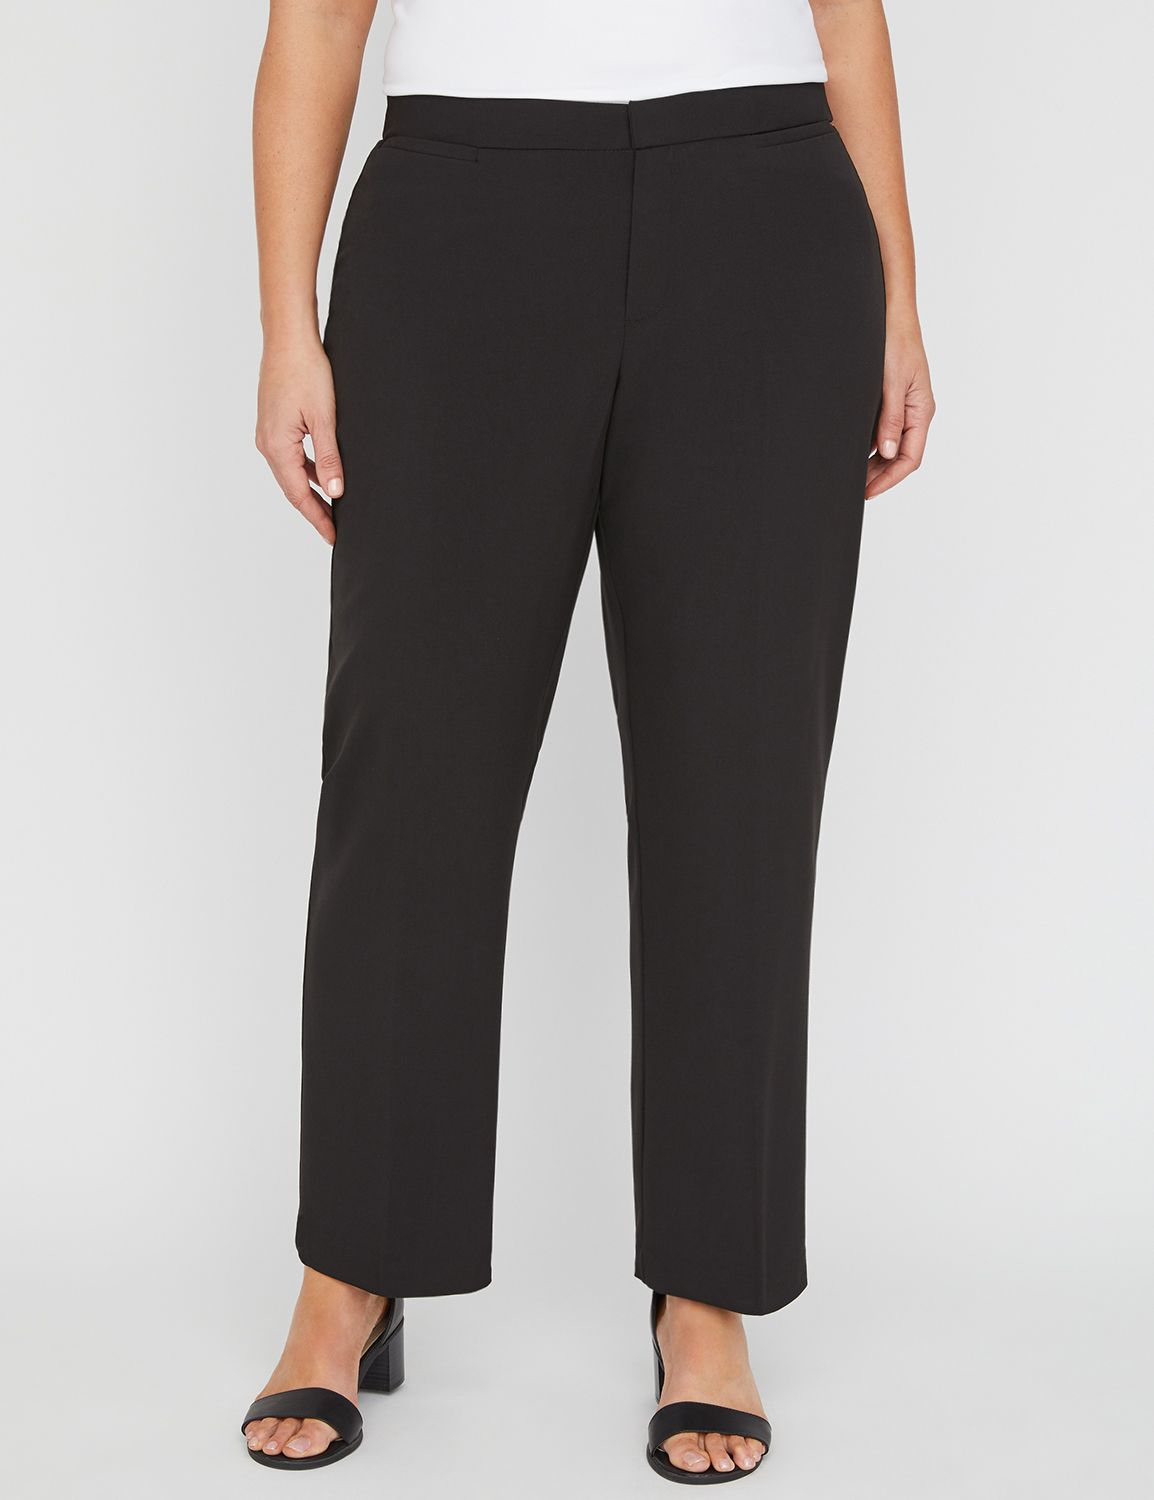 Right Fit Pant (Moderately Curvy) Right Fit Pant (Moderately Curvy) MP-300009883